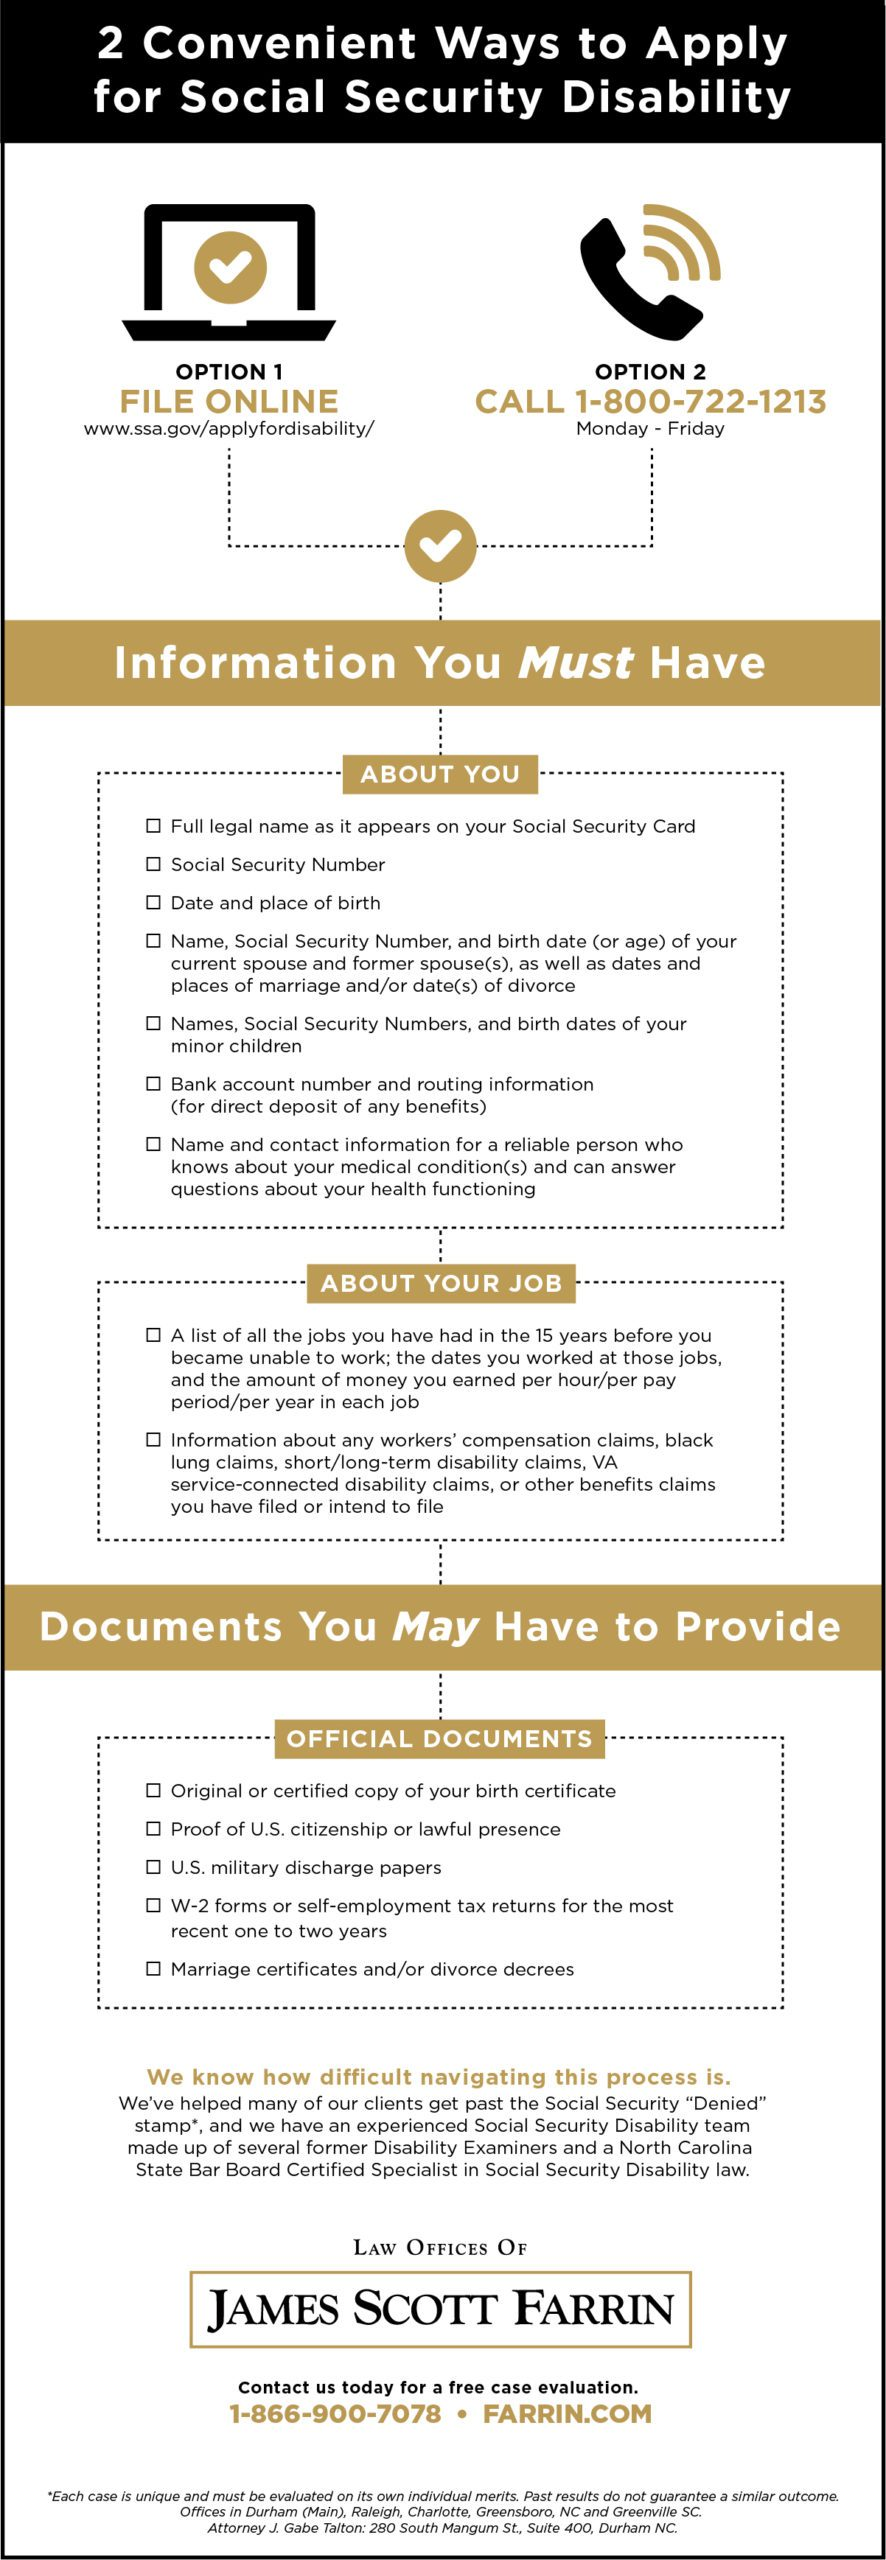 Two easy ways to apply for Social Security Disability, and info & documents you must or may need.